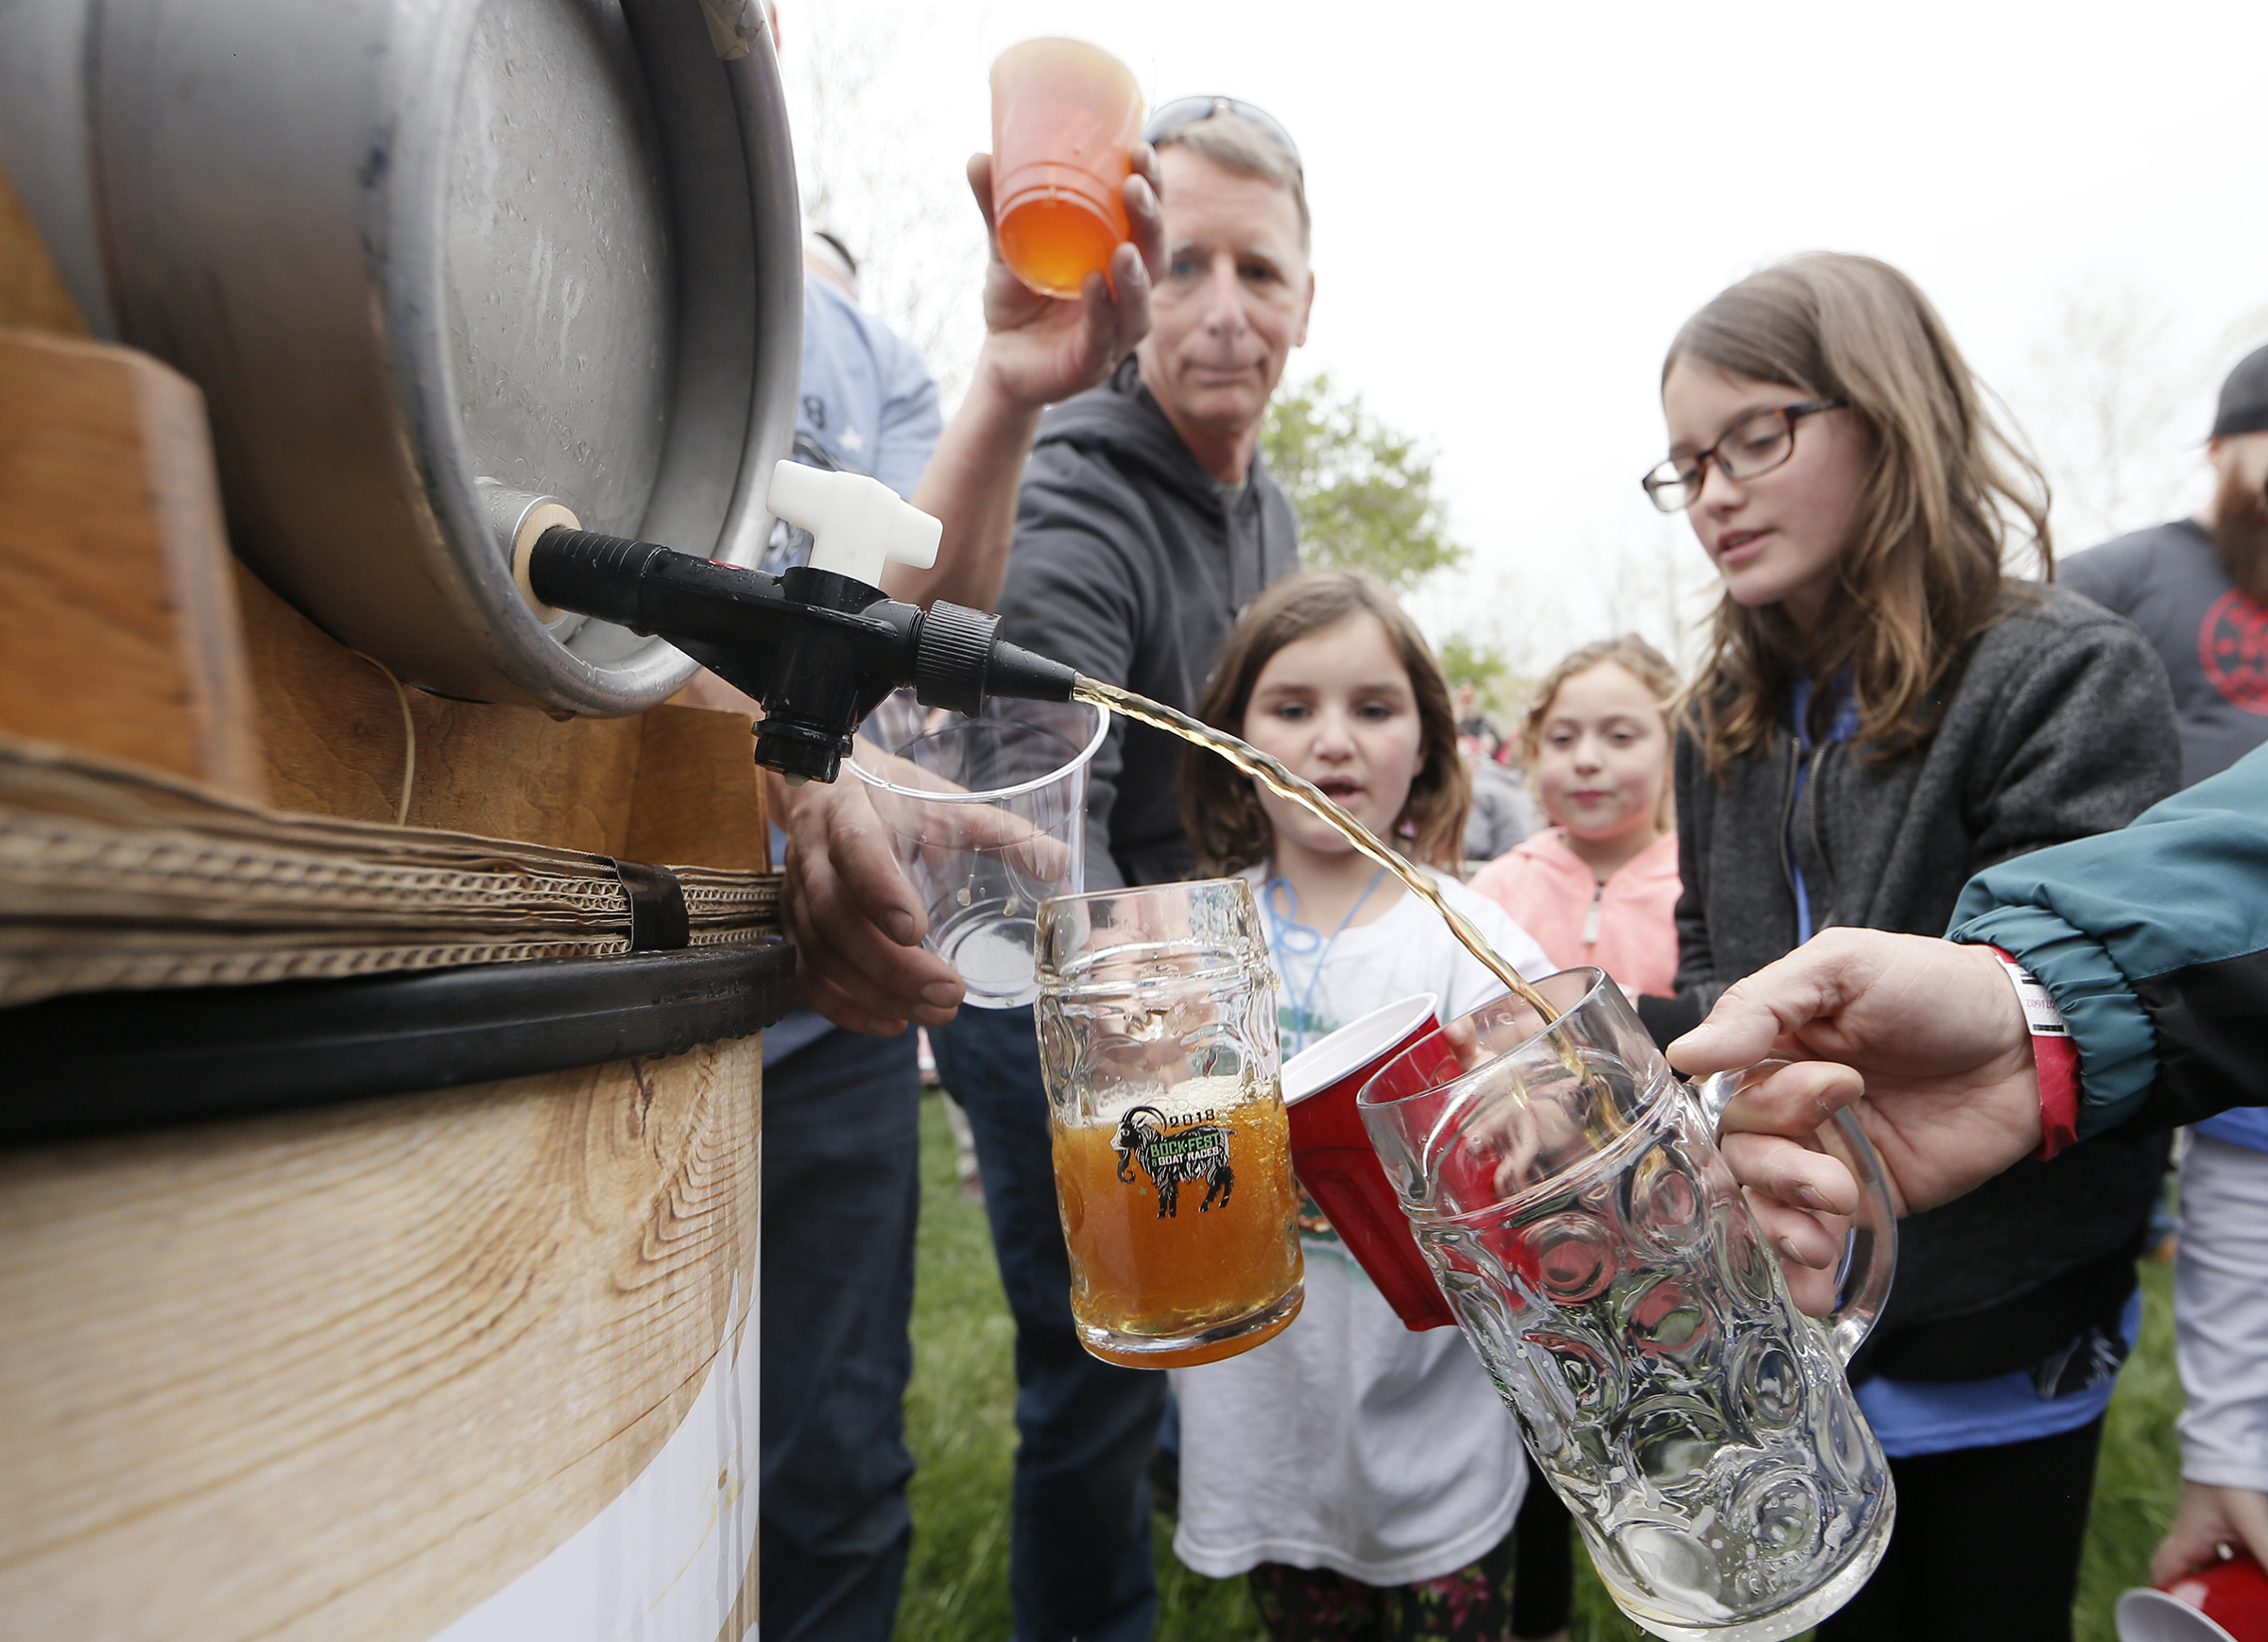 People of all ages line up to get some newly tapped Princess Jenny Maibock beer immediately after the final goat race during the annual Sly Fox Bock Fest and Goat Race held at the Sly Fox Brewery and tasting room in Pottstown, Pa. on May 6, 2018.